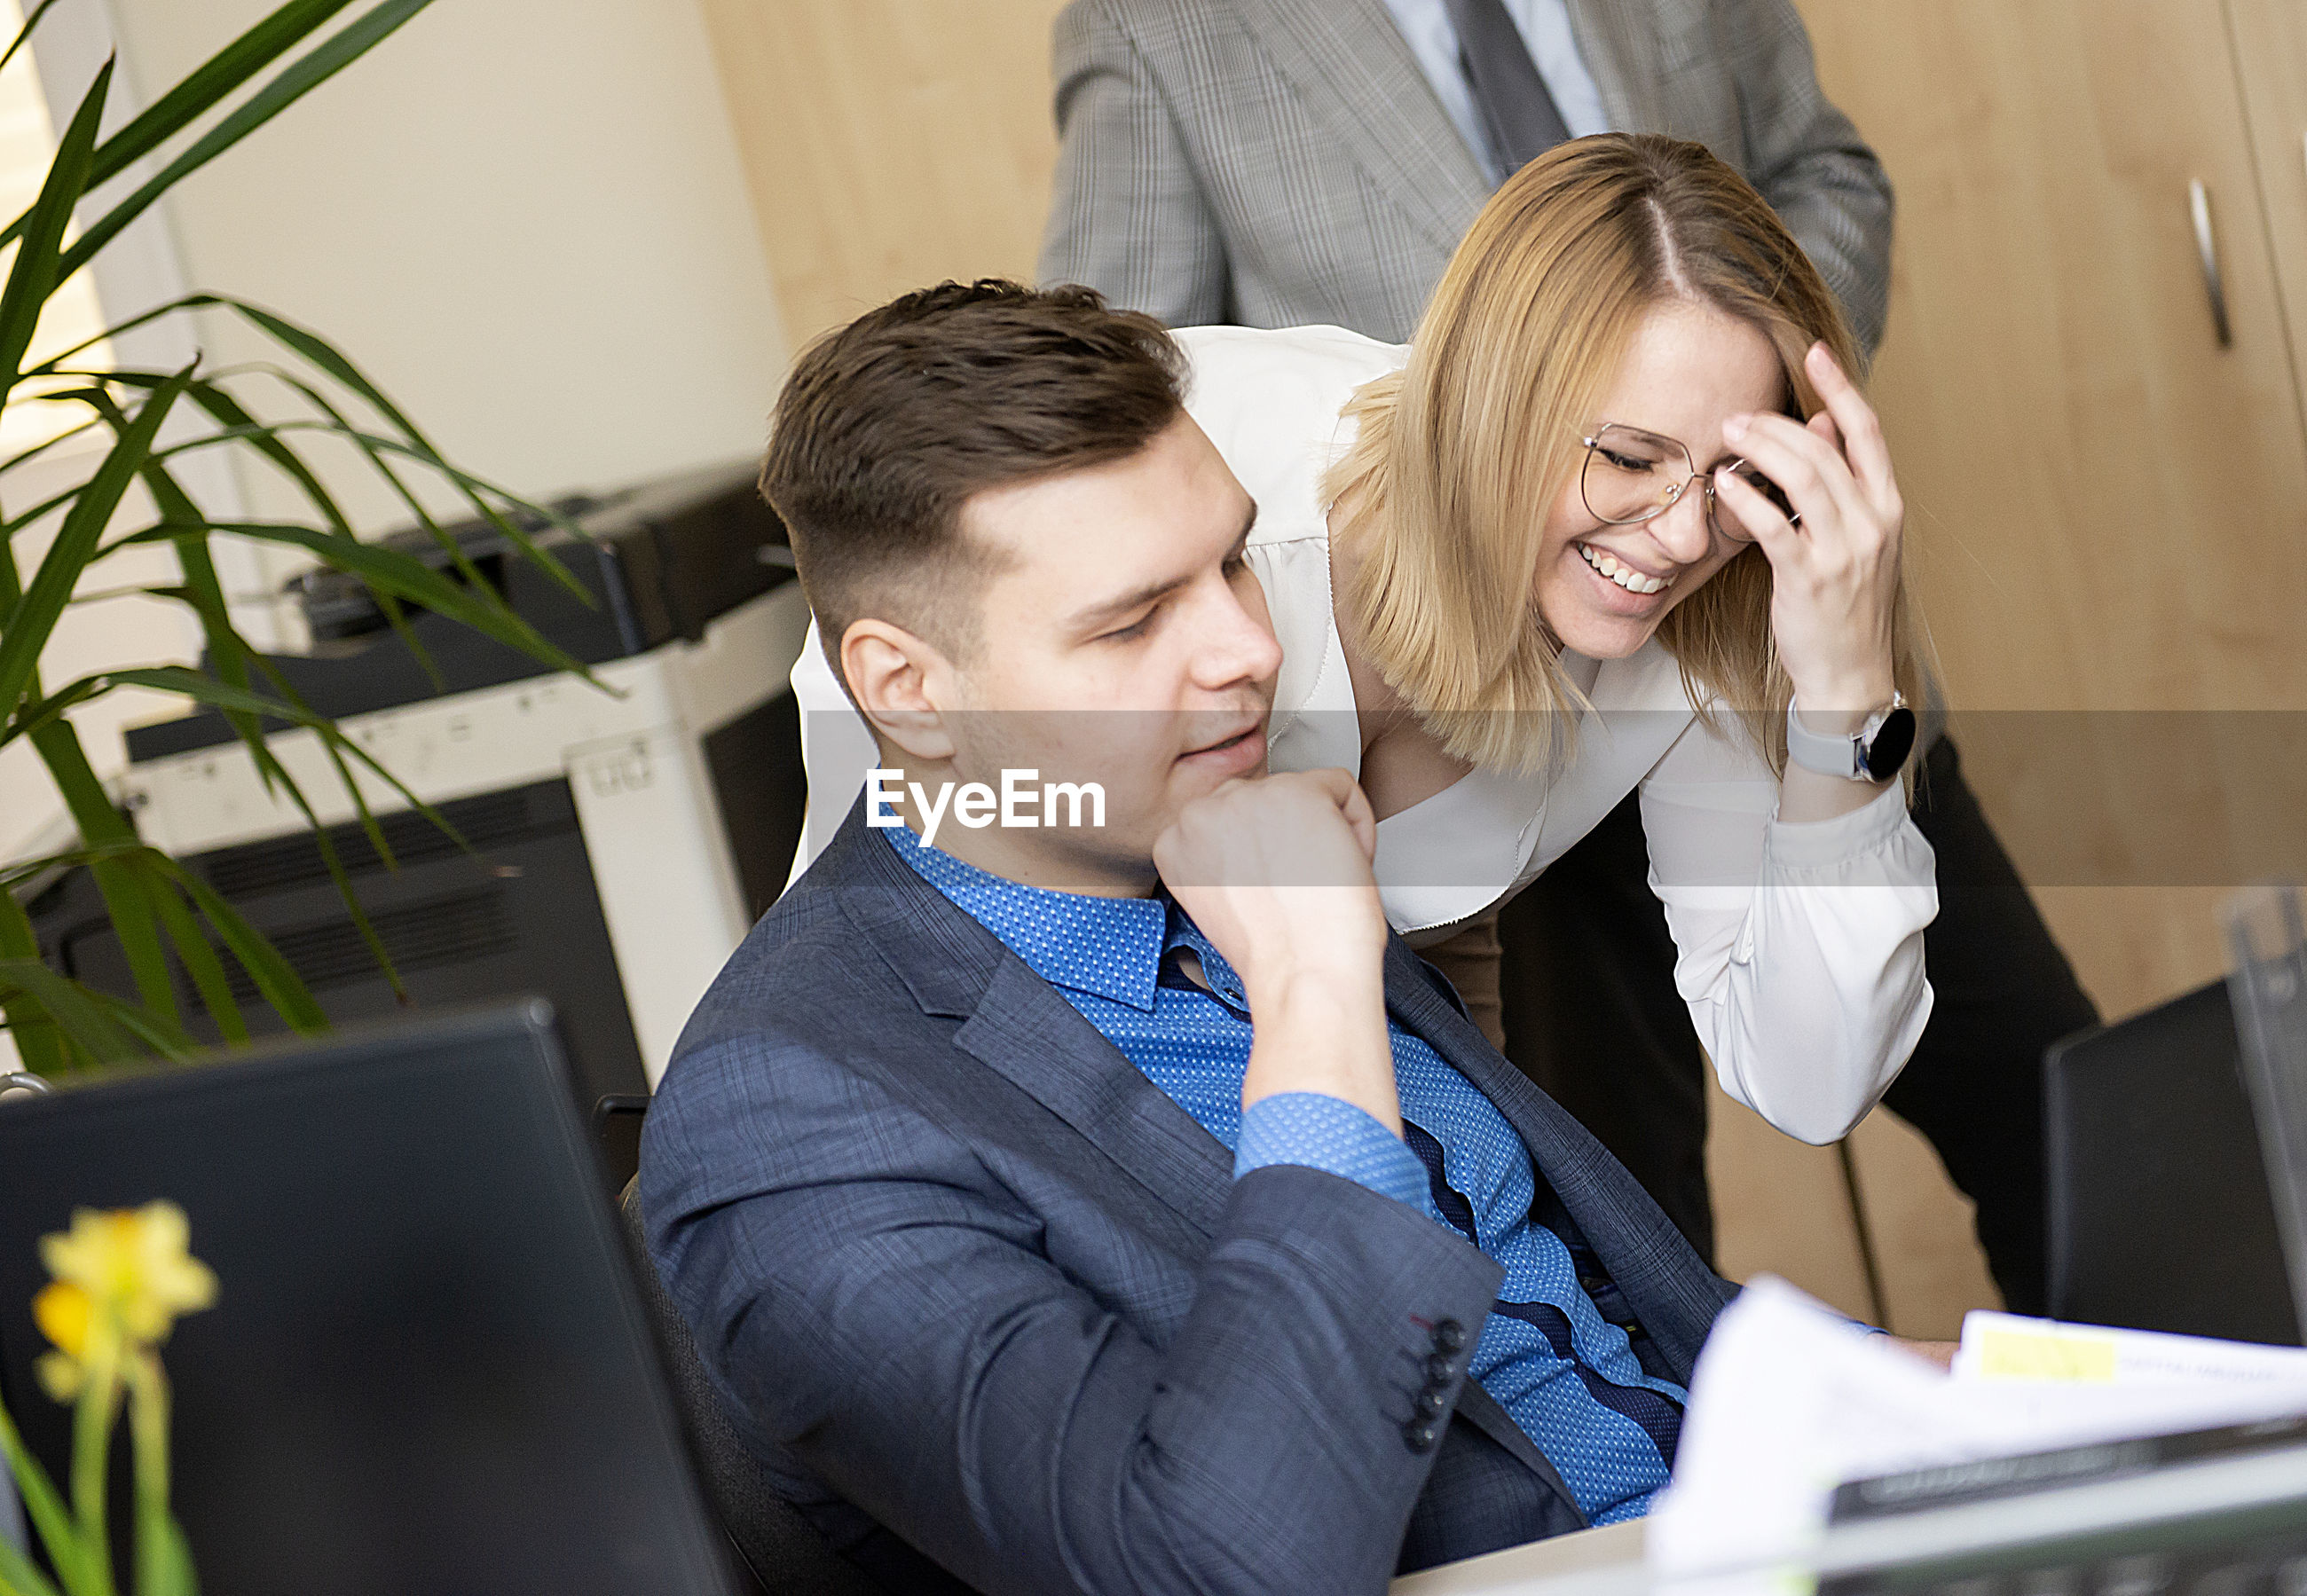 Beautiful woman pointing at laptop  and discussing  with her coworker while standing at office